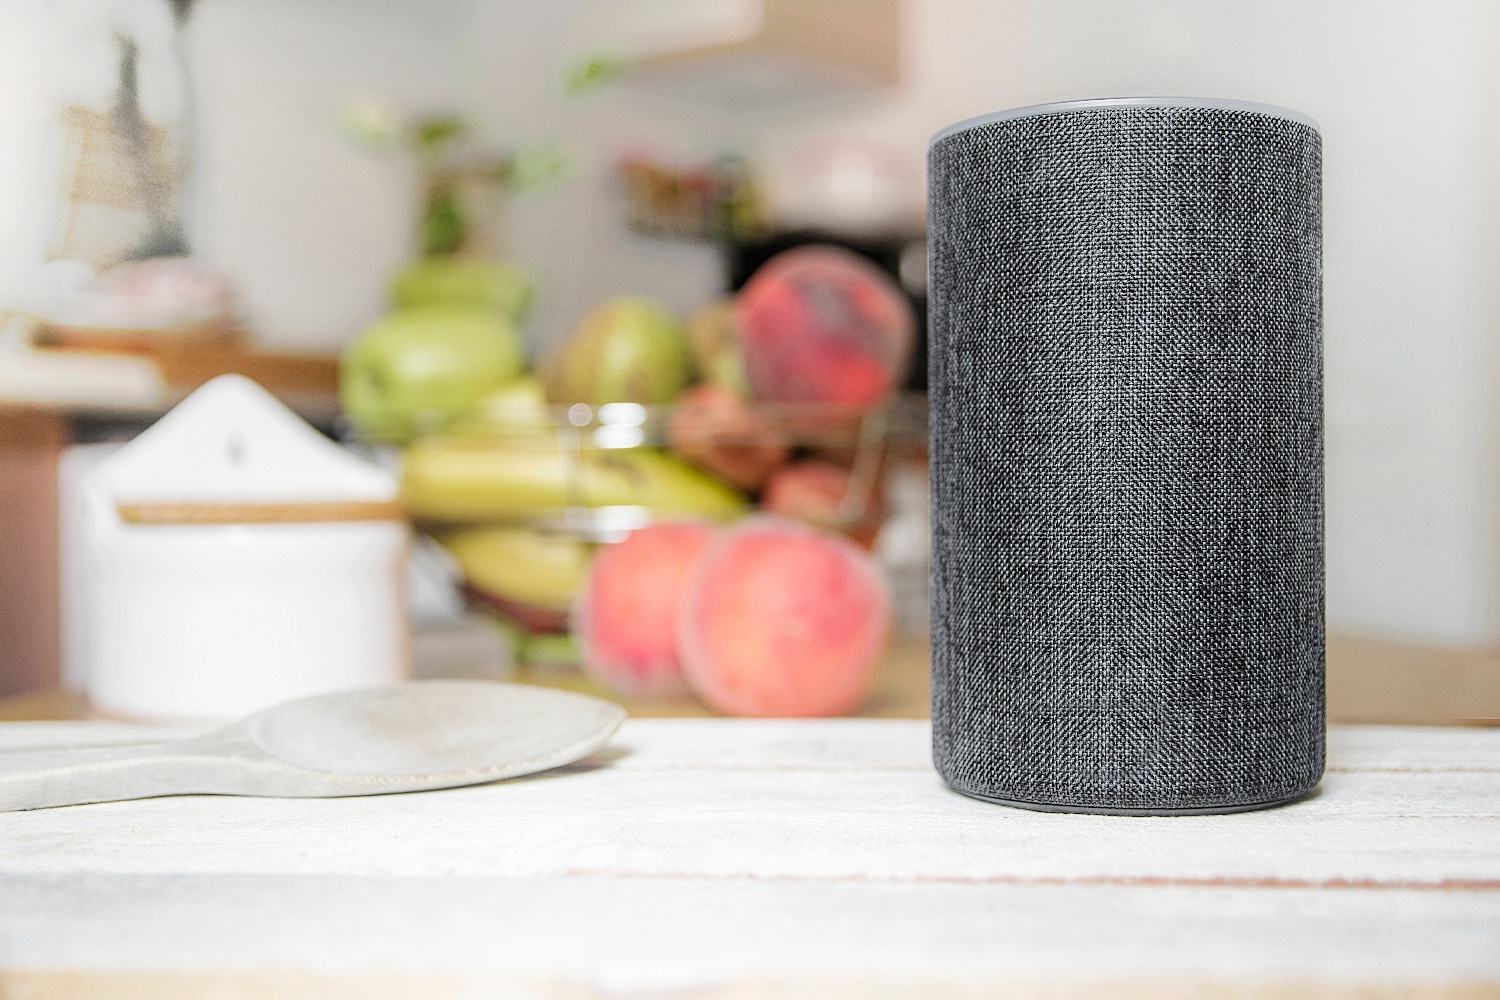 Amazon Echo device in kitchen